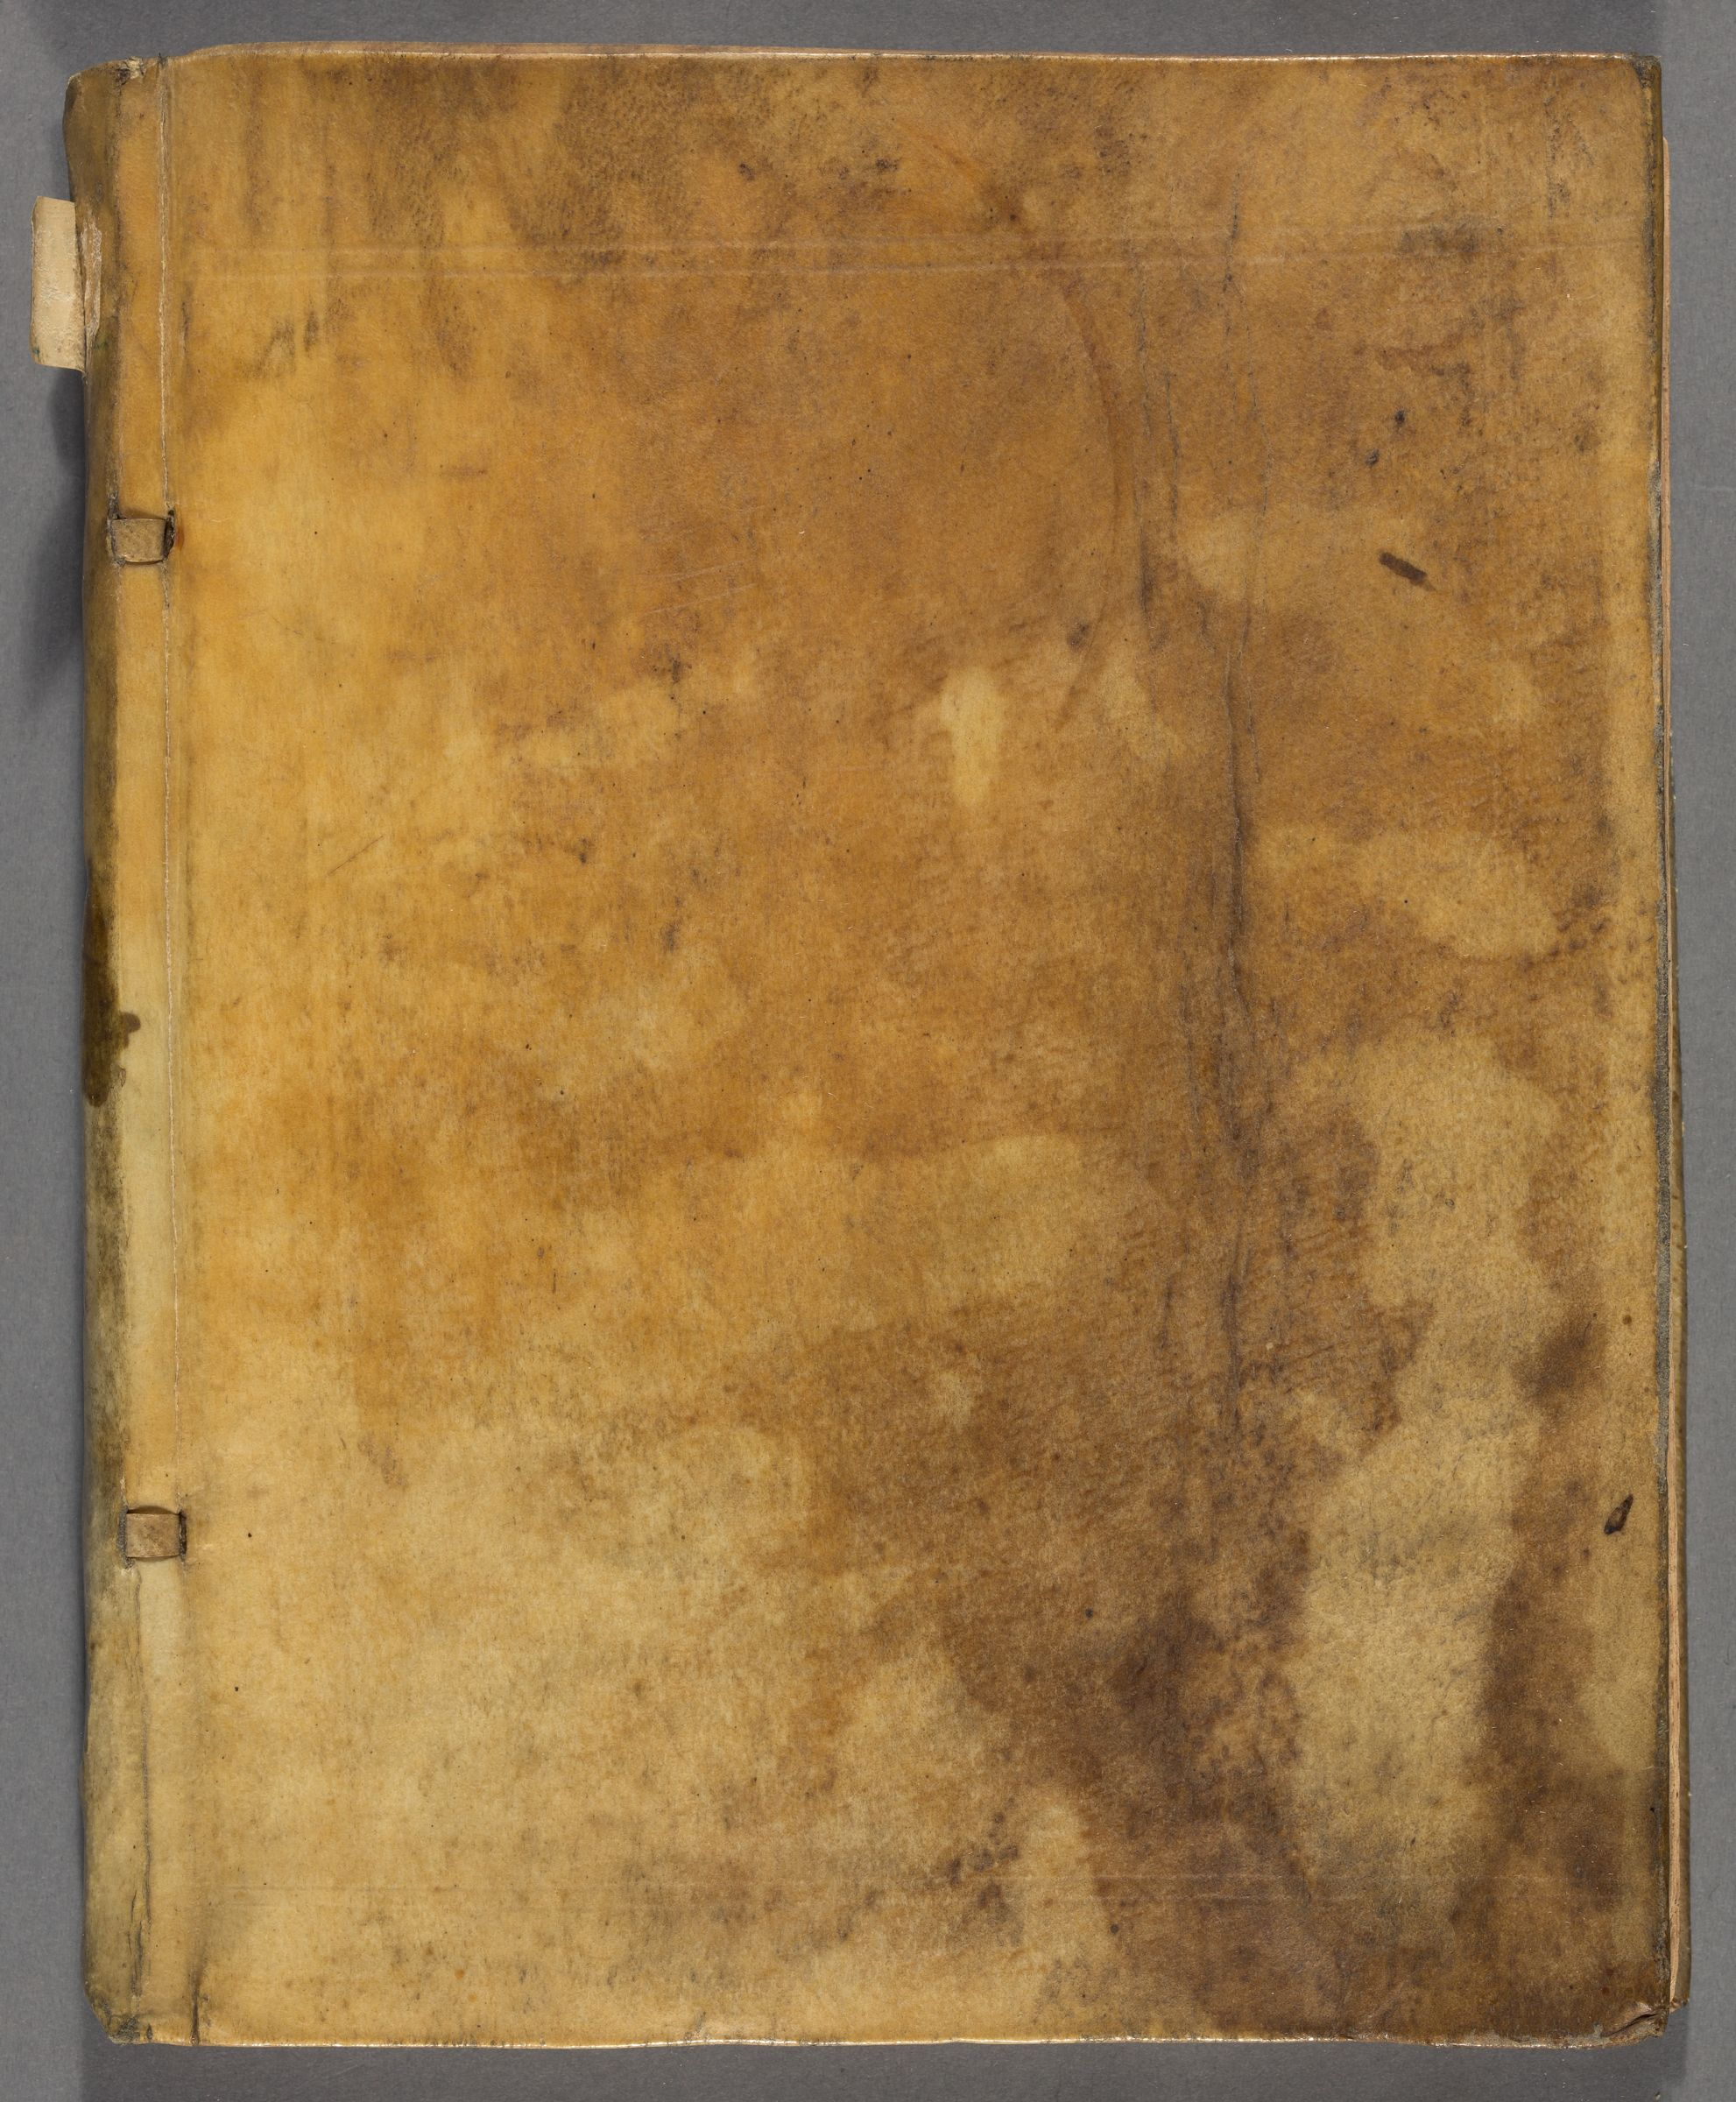 Student mathematical notebook of Ephraim Eliot, 1779